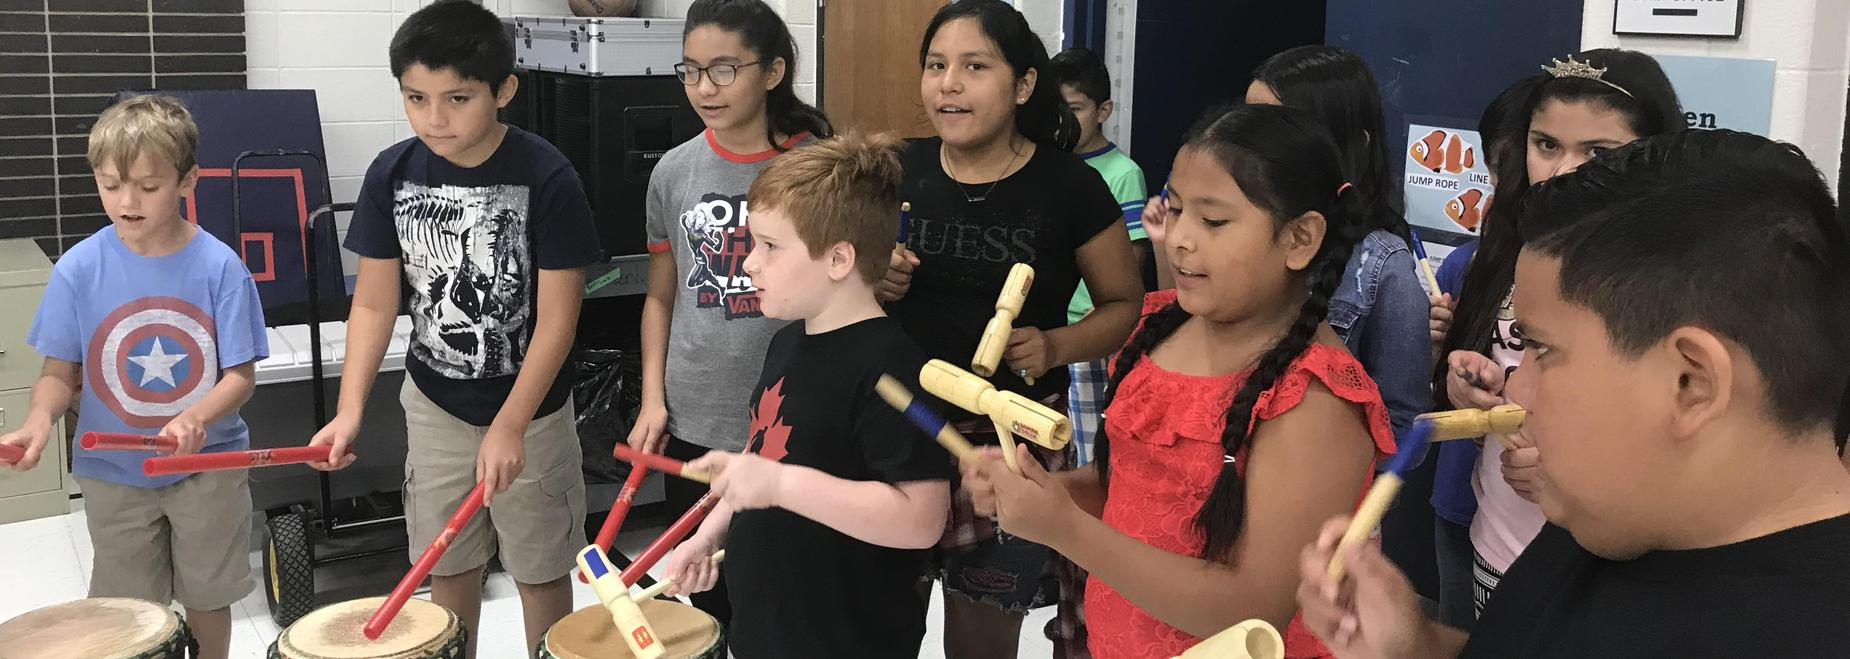 Dancing Drums Assembly